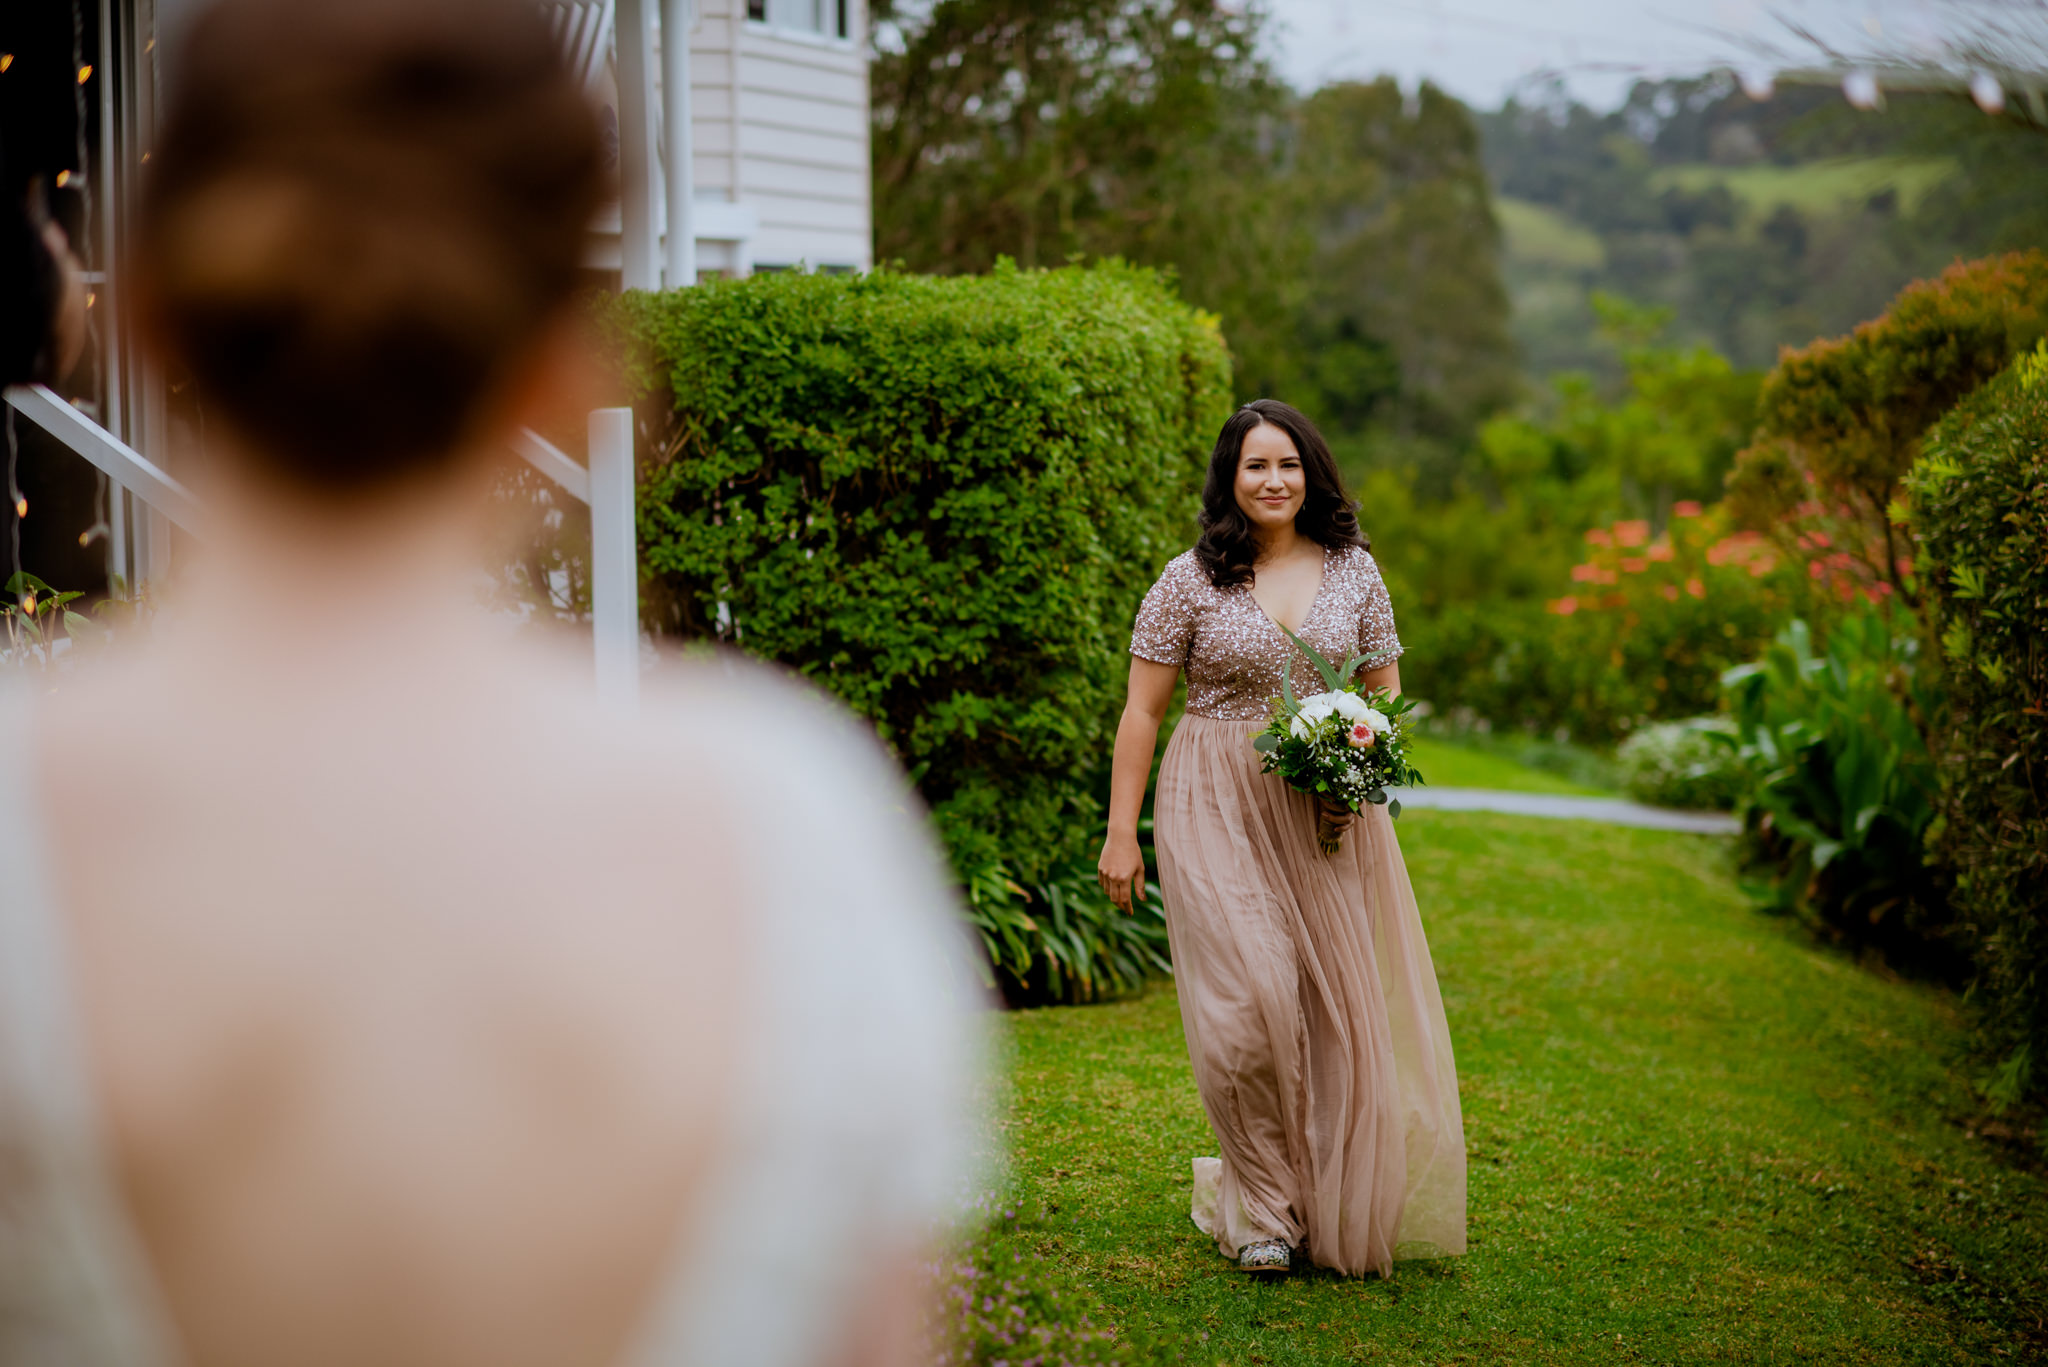 Bride smiles and walks on grass next to bushes with another bride out of focus in foreground